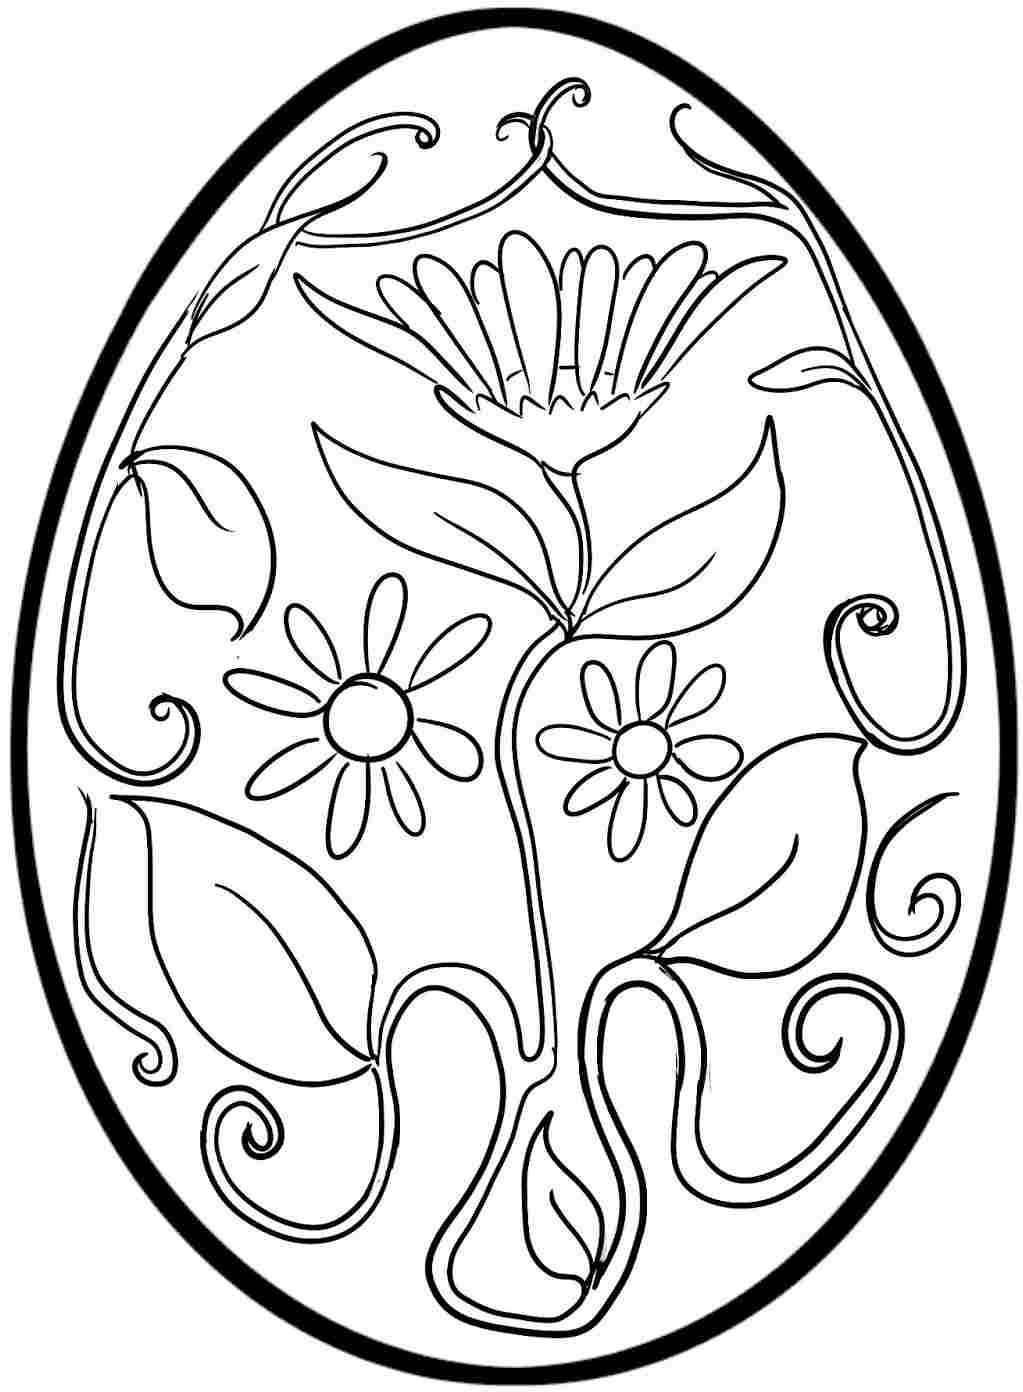 Easter Egg Colouring Pages Free For Kids Boys 16949 Coloring Easter Eggs Easter Egg Printable Easter Egg Coloring Pages